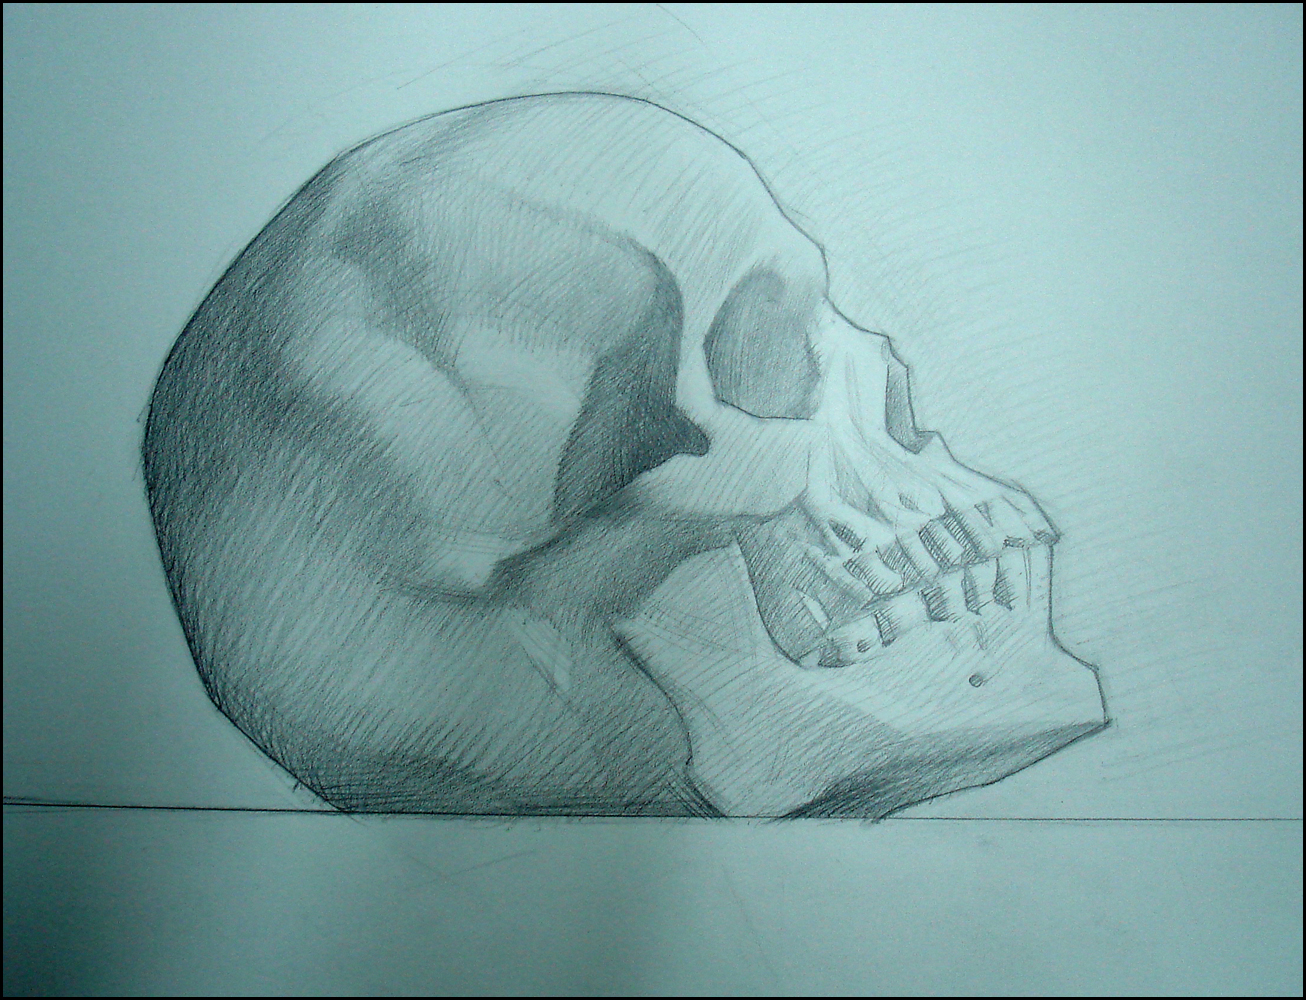 Skull in Profile, pencil on paper, 9x12 inches